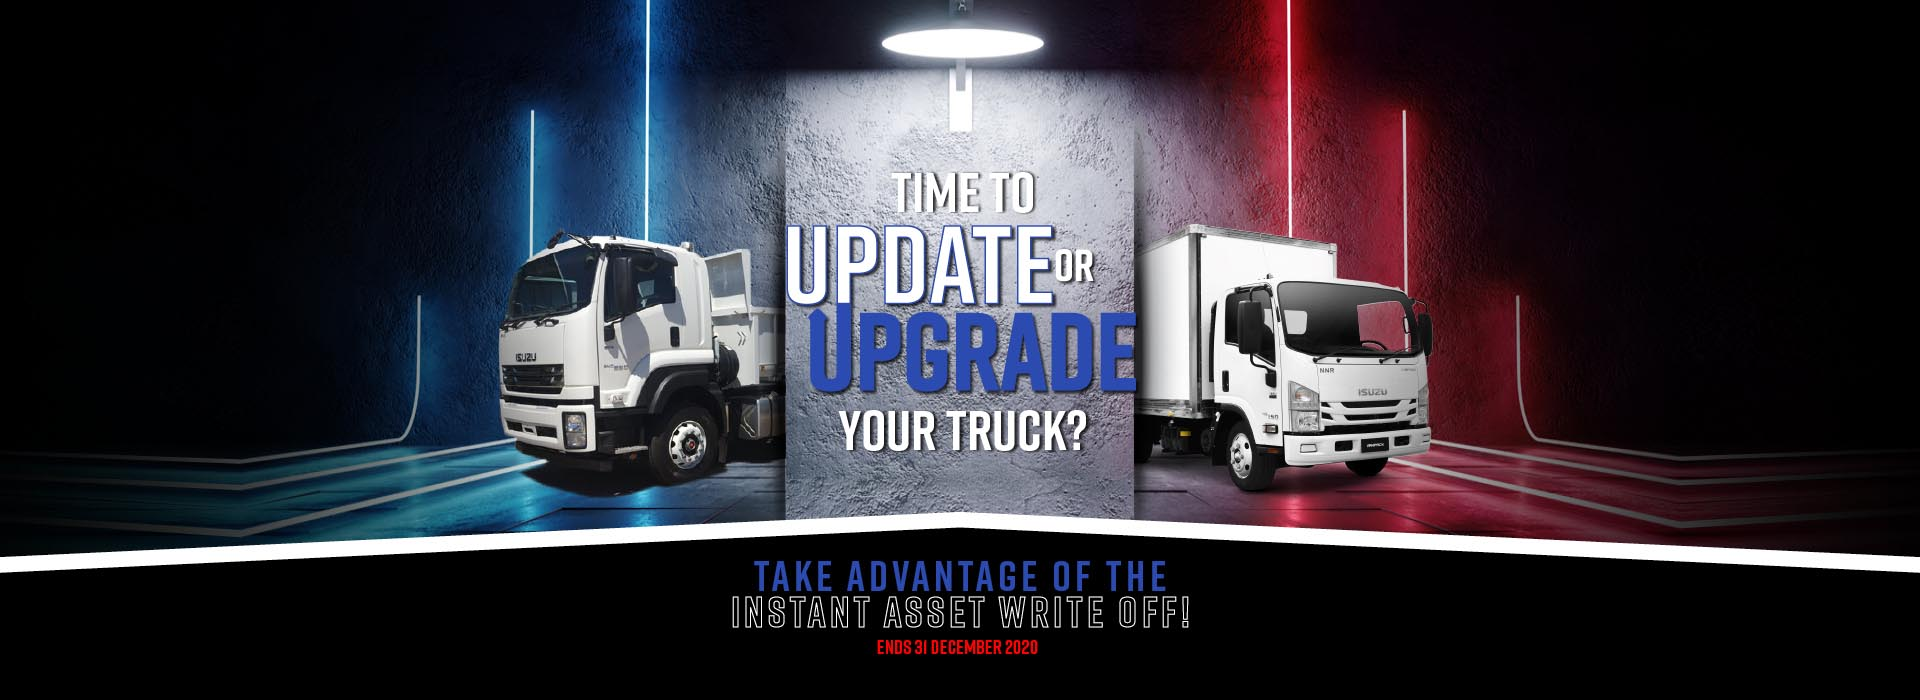 Brisbane Isuzu Update or Upgrade Your Truck Offer